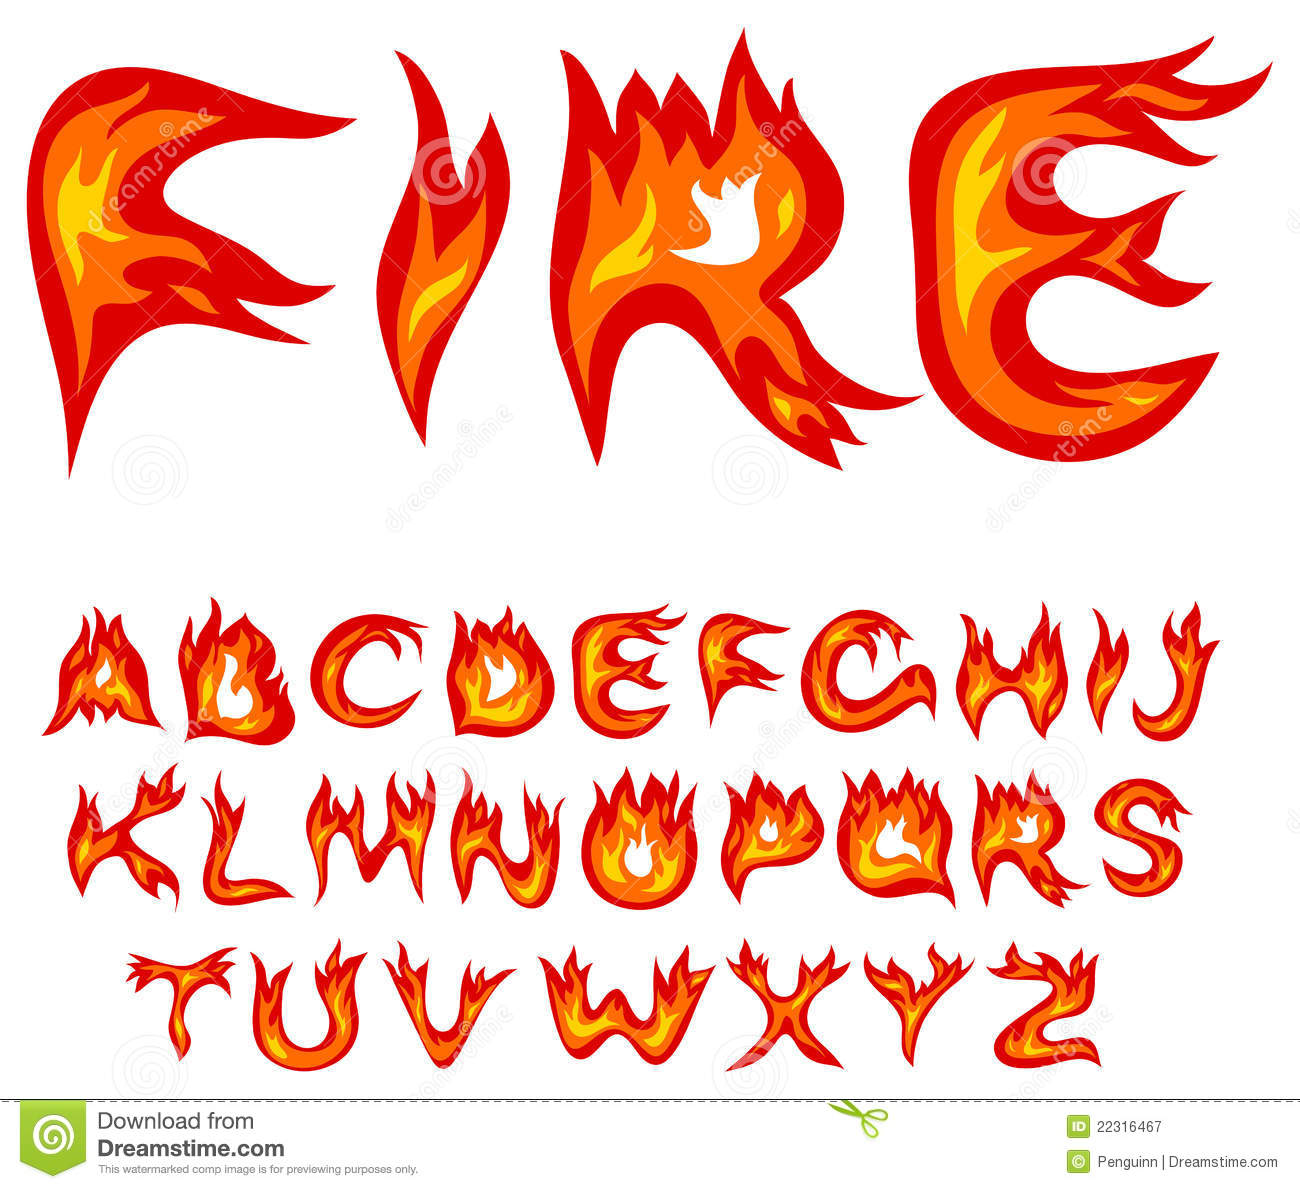 Dice clipart flames 113 Dice #26 1 Clipart